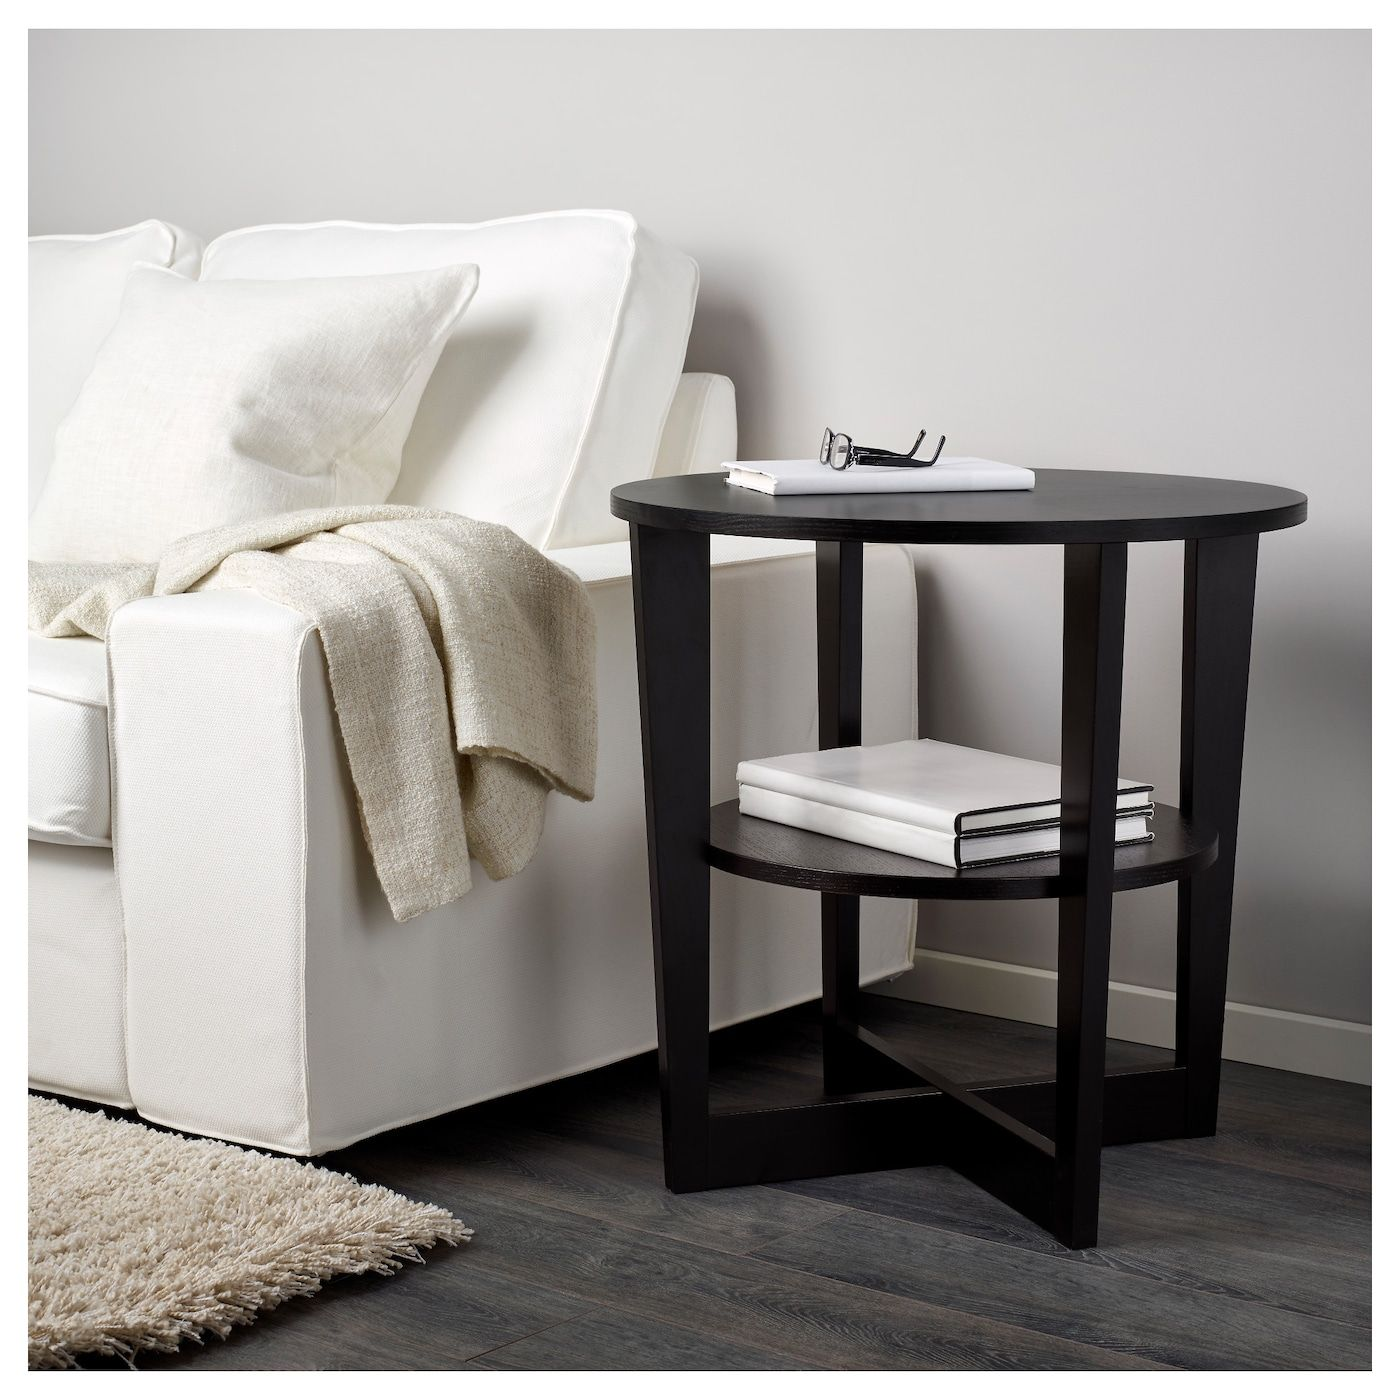 Products Ikea Side Table Round Coffee Table Ikea Ikea Lack Side Table [ 1400 x 1400 Pixel ]